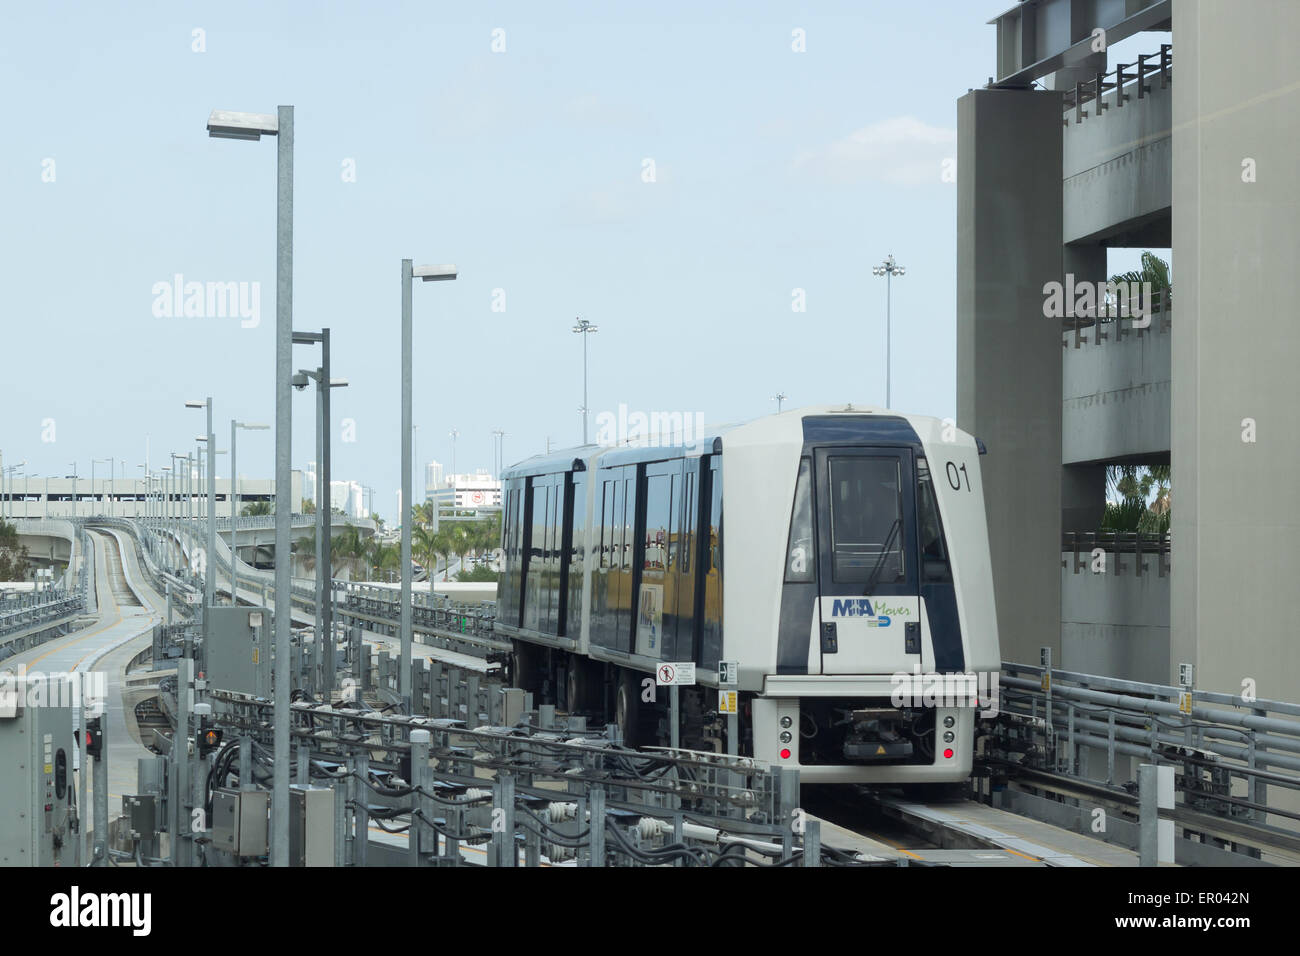 Automated People Mover arrival at Miami airport in Florida, USA. - Stock Image